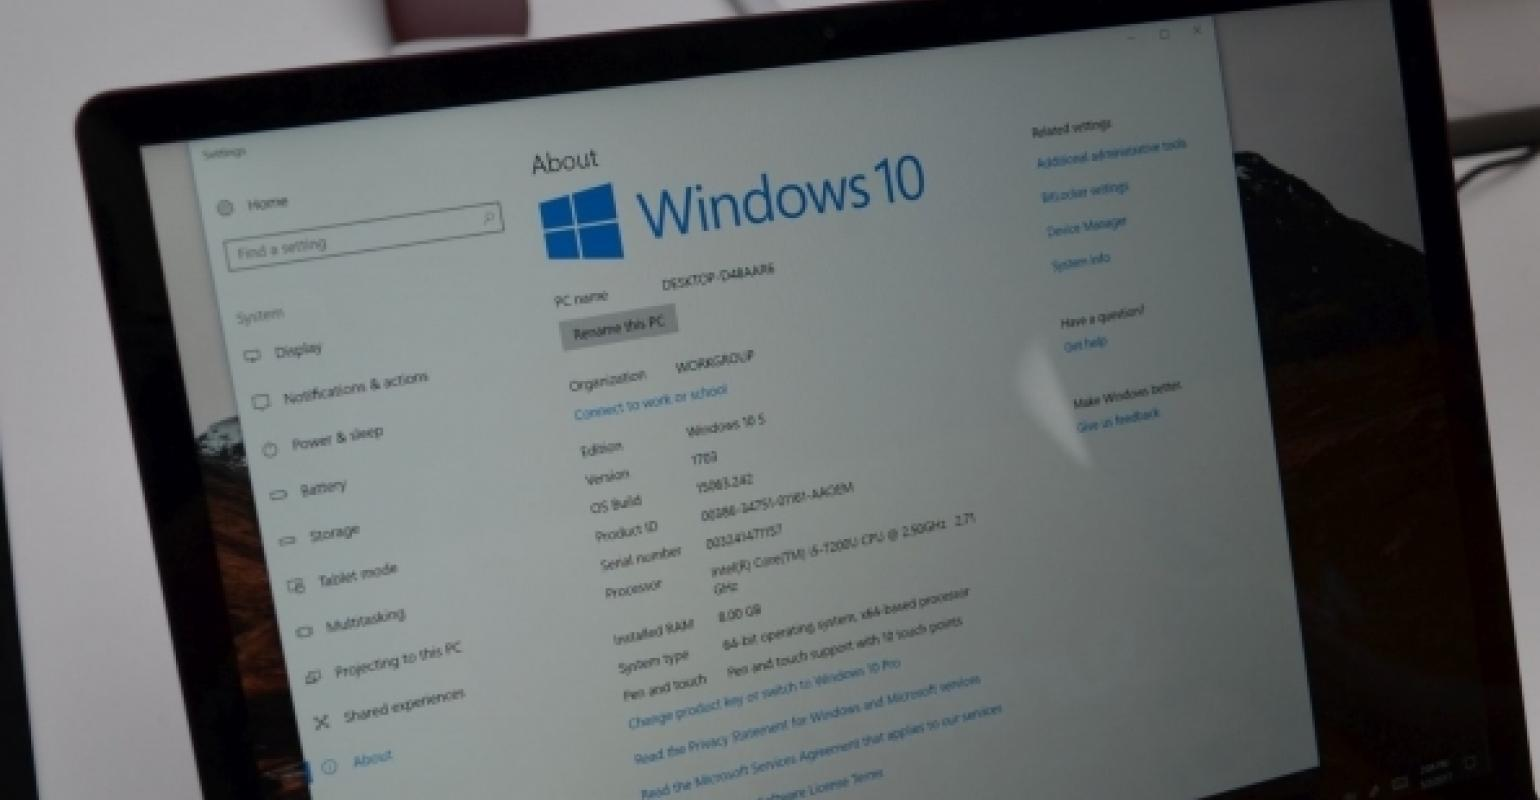 Free Windows 10 S Upgrade to Windows 10 Pro Extended by